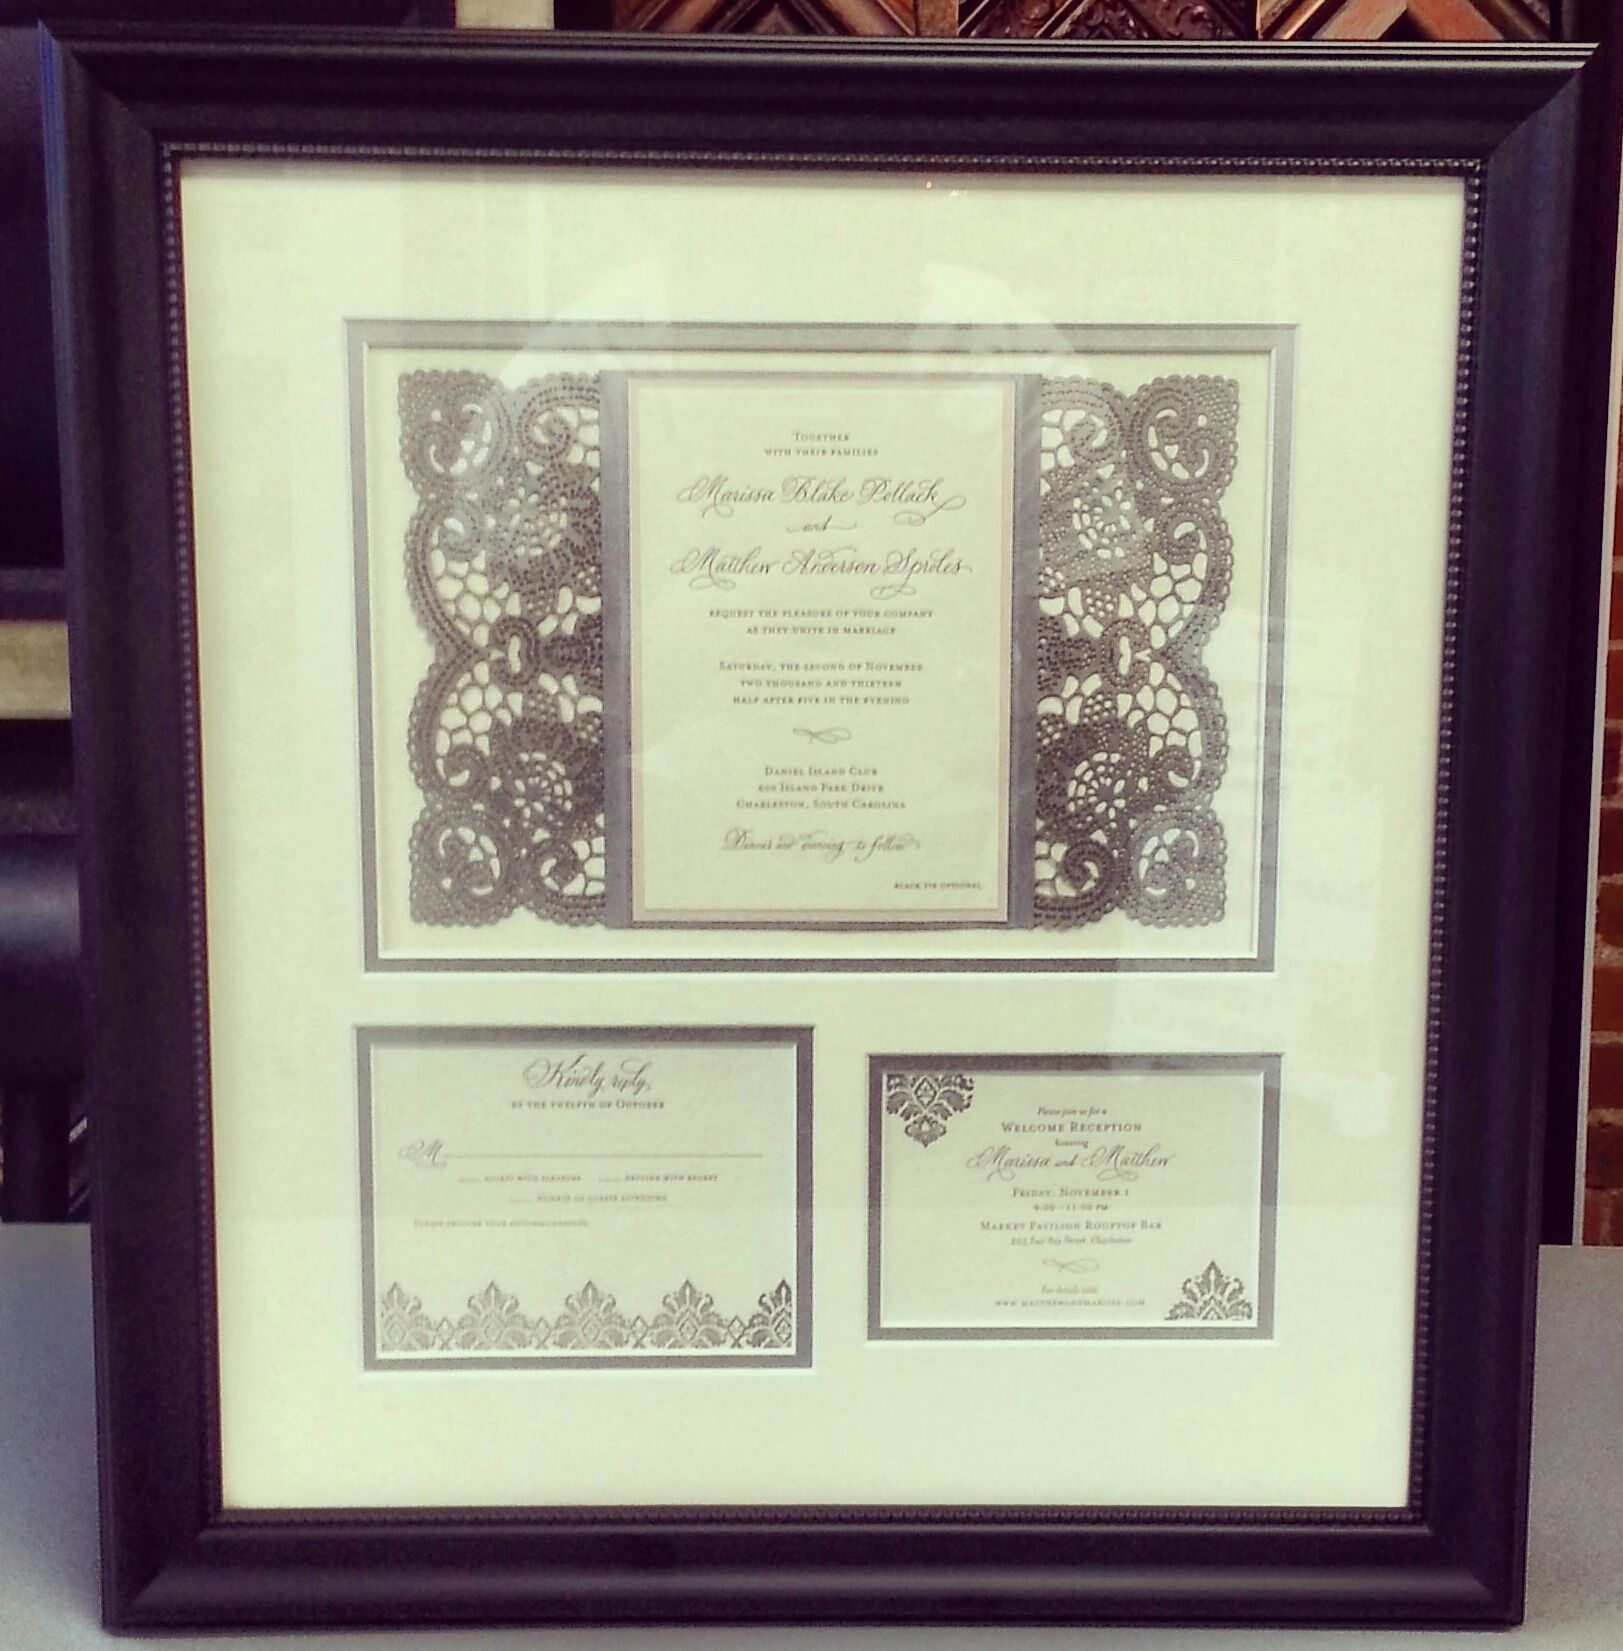 A Custom Framed Wedding Invitation Is The Perfect Gift For Newly Weds